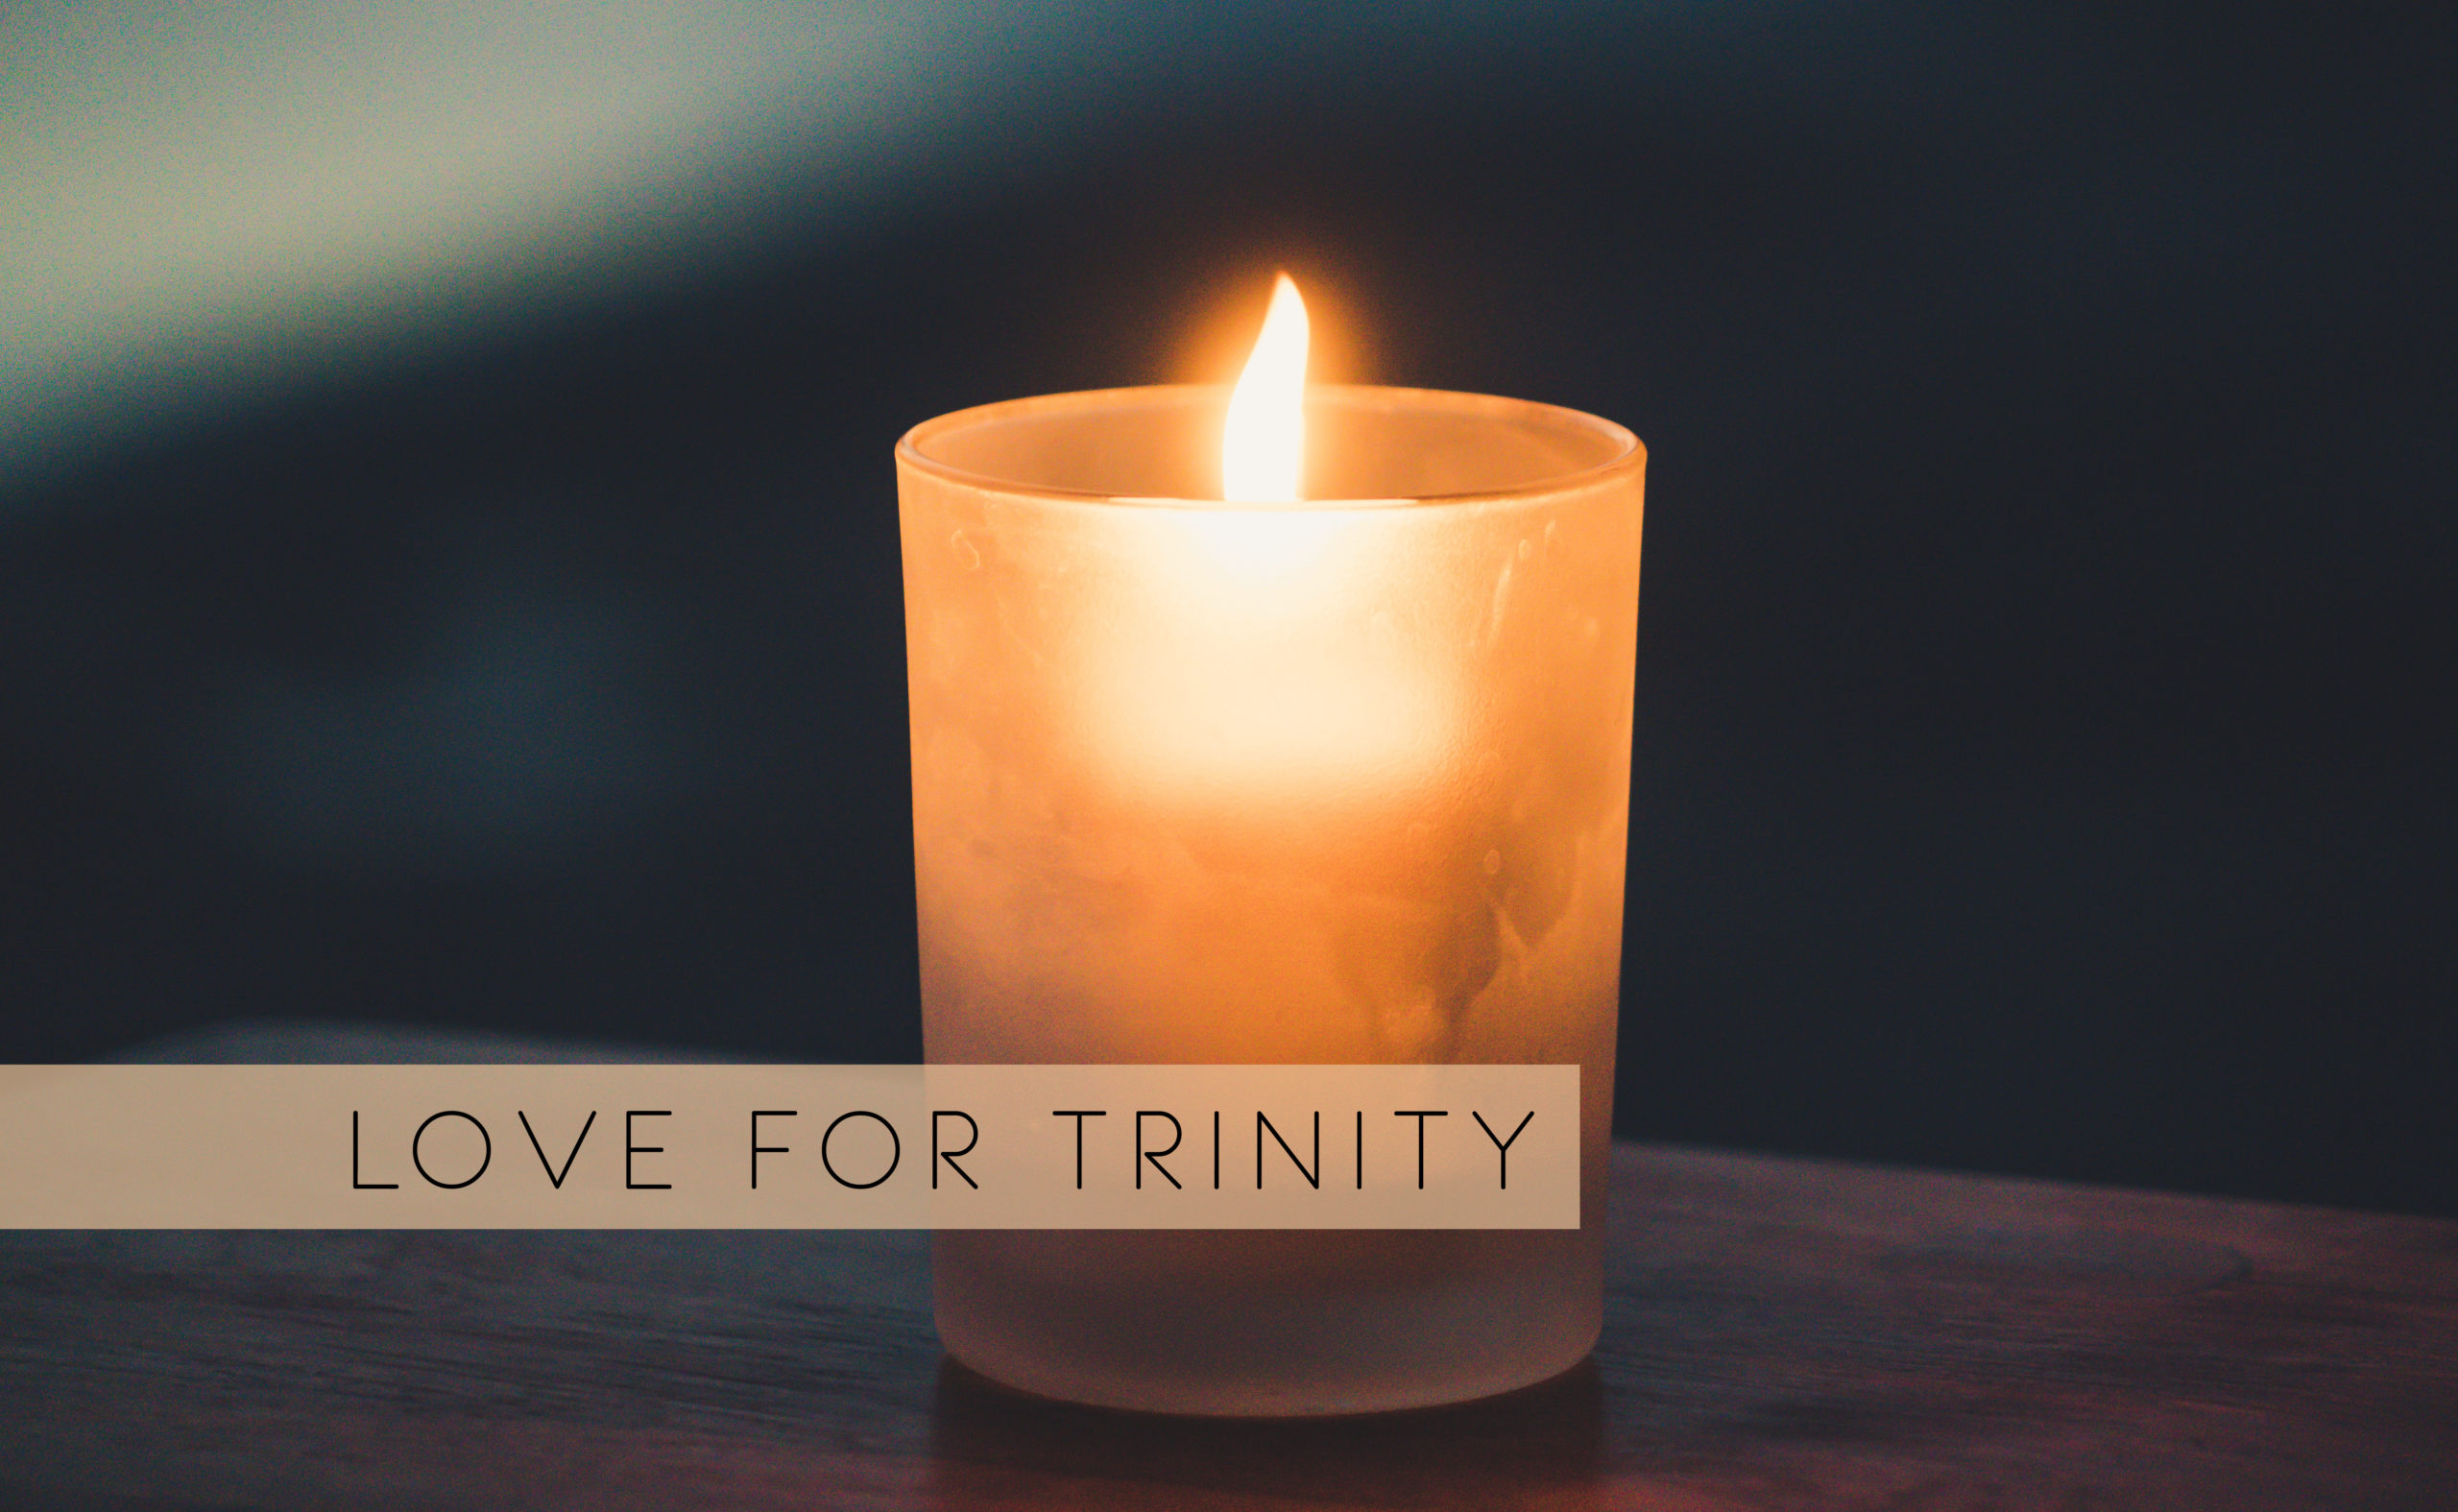 MONDAY: Love for Trinity